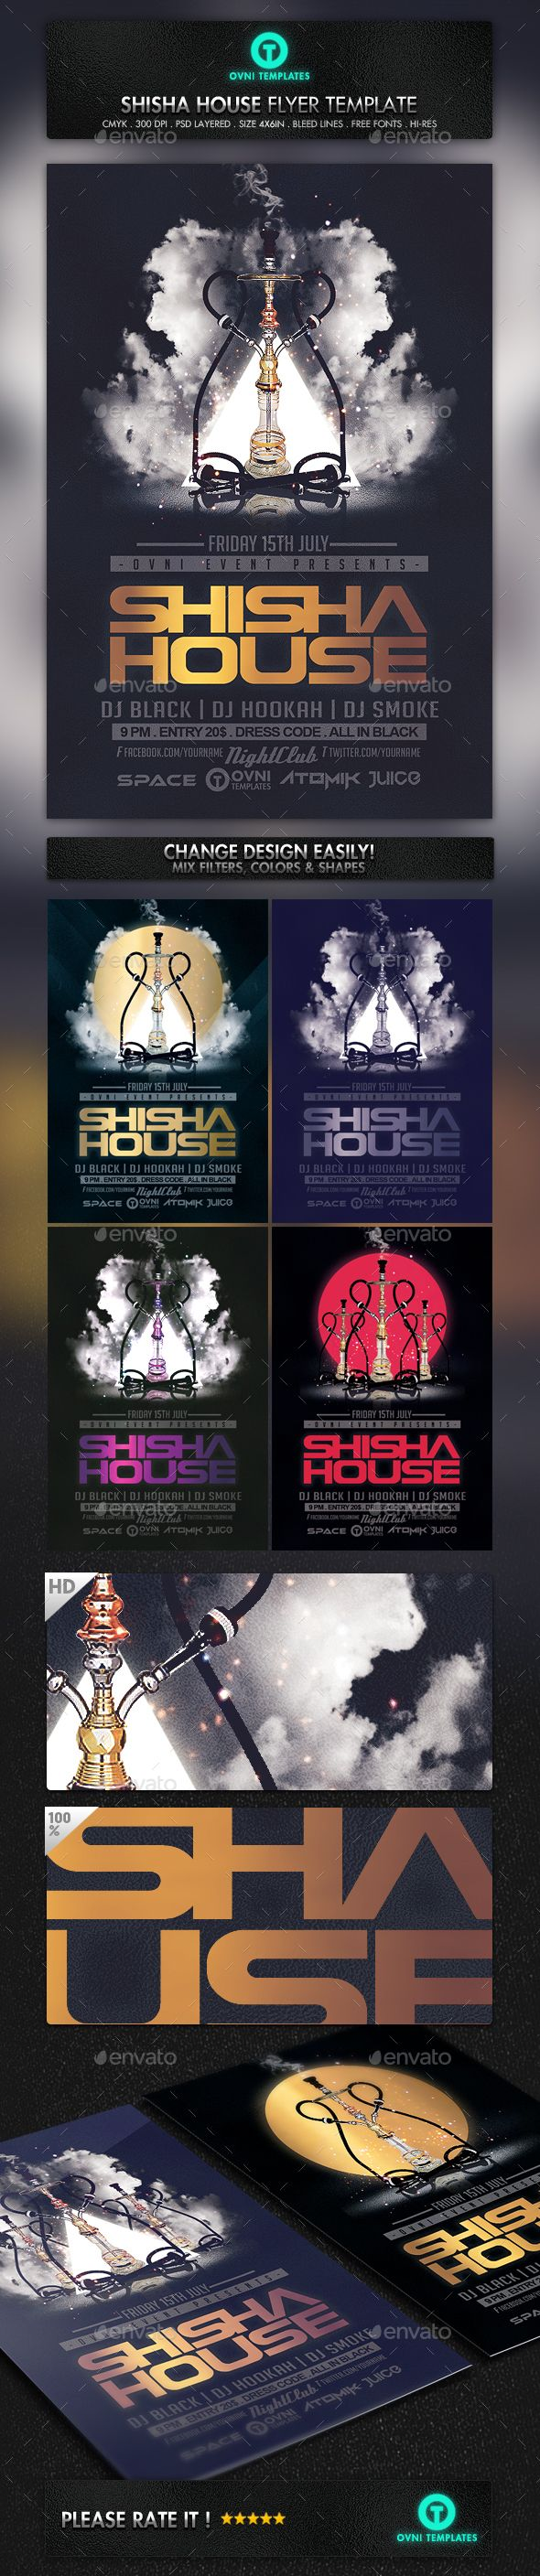 Shisha Hookah Smoke Flyer Template — Photoshop PSD #urban #tabacco • Available here → https://graphicriver.net/item/shisha-hookah-smoke-flyer-template/13857796?ref=pxcr